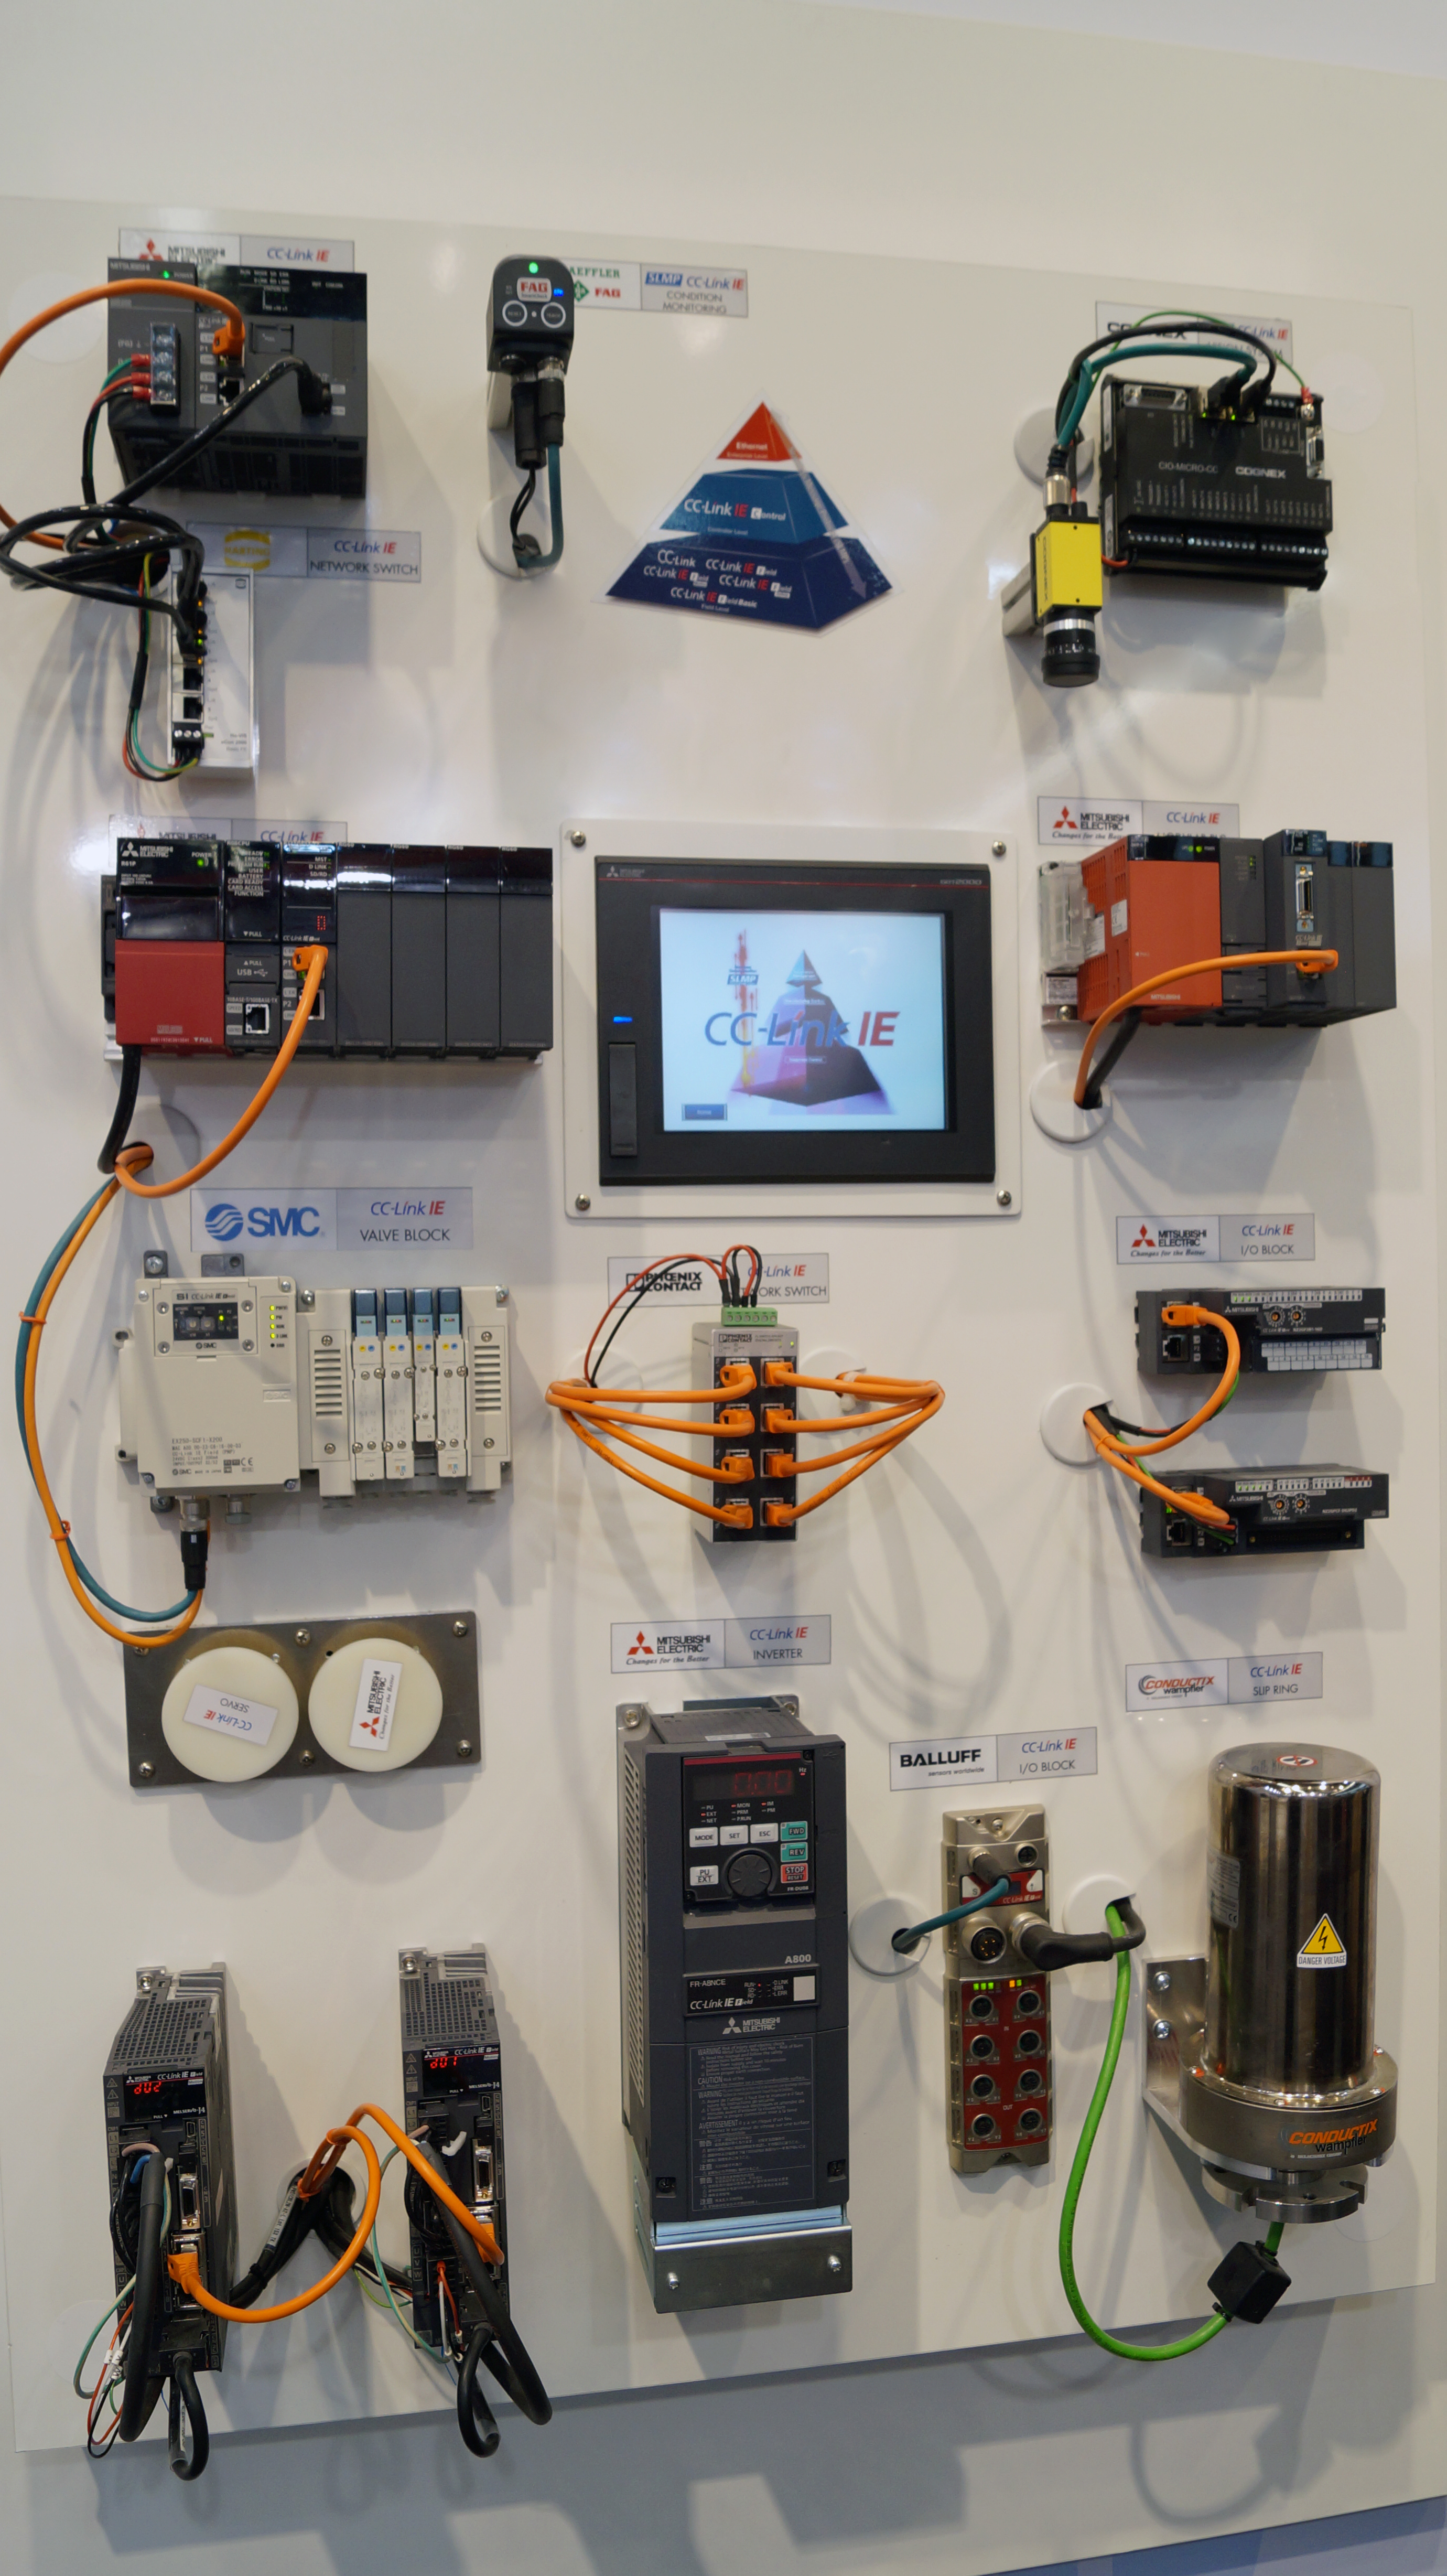 Mitsubishi Electric highlights CC-Link IE as the perfect network choice for Industry 4.0